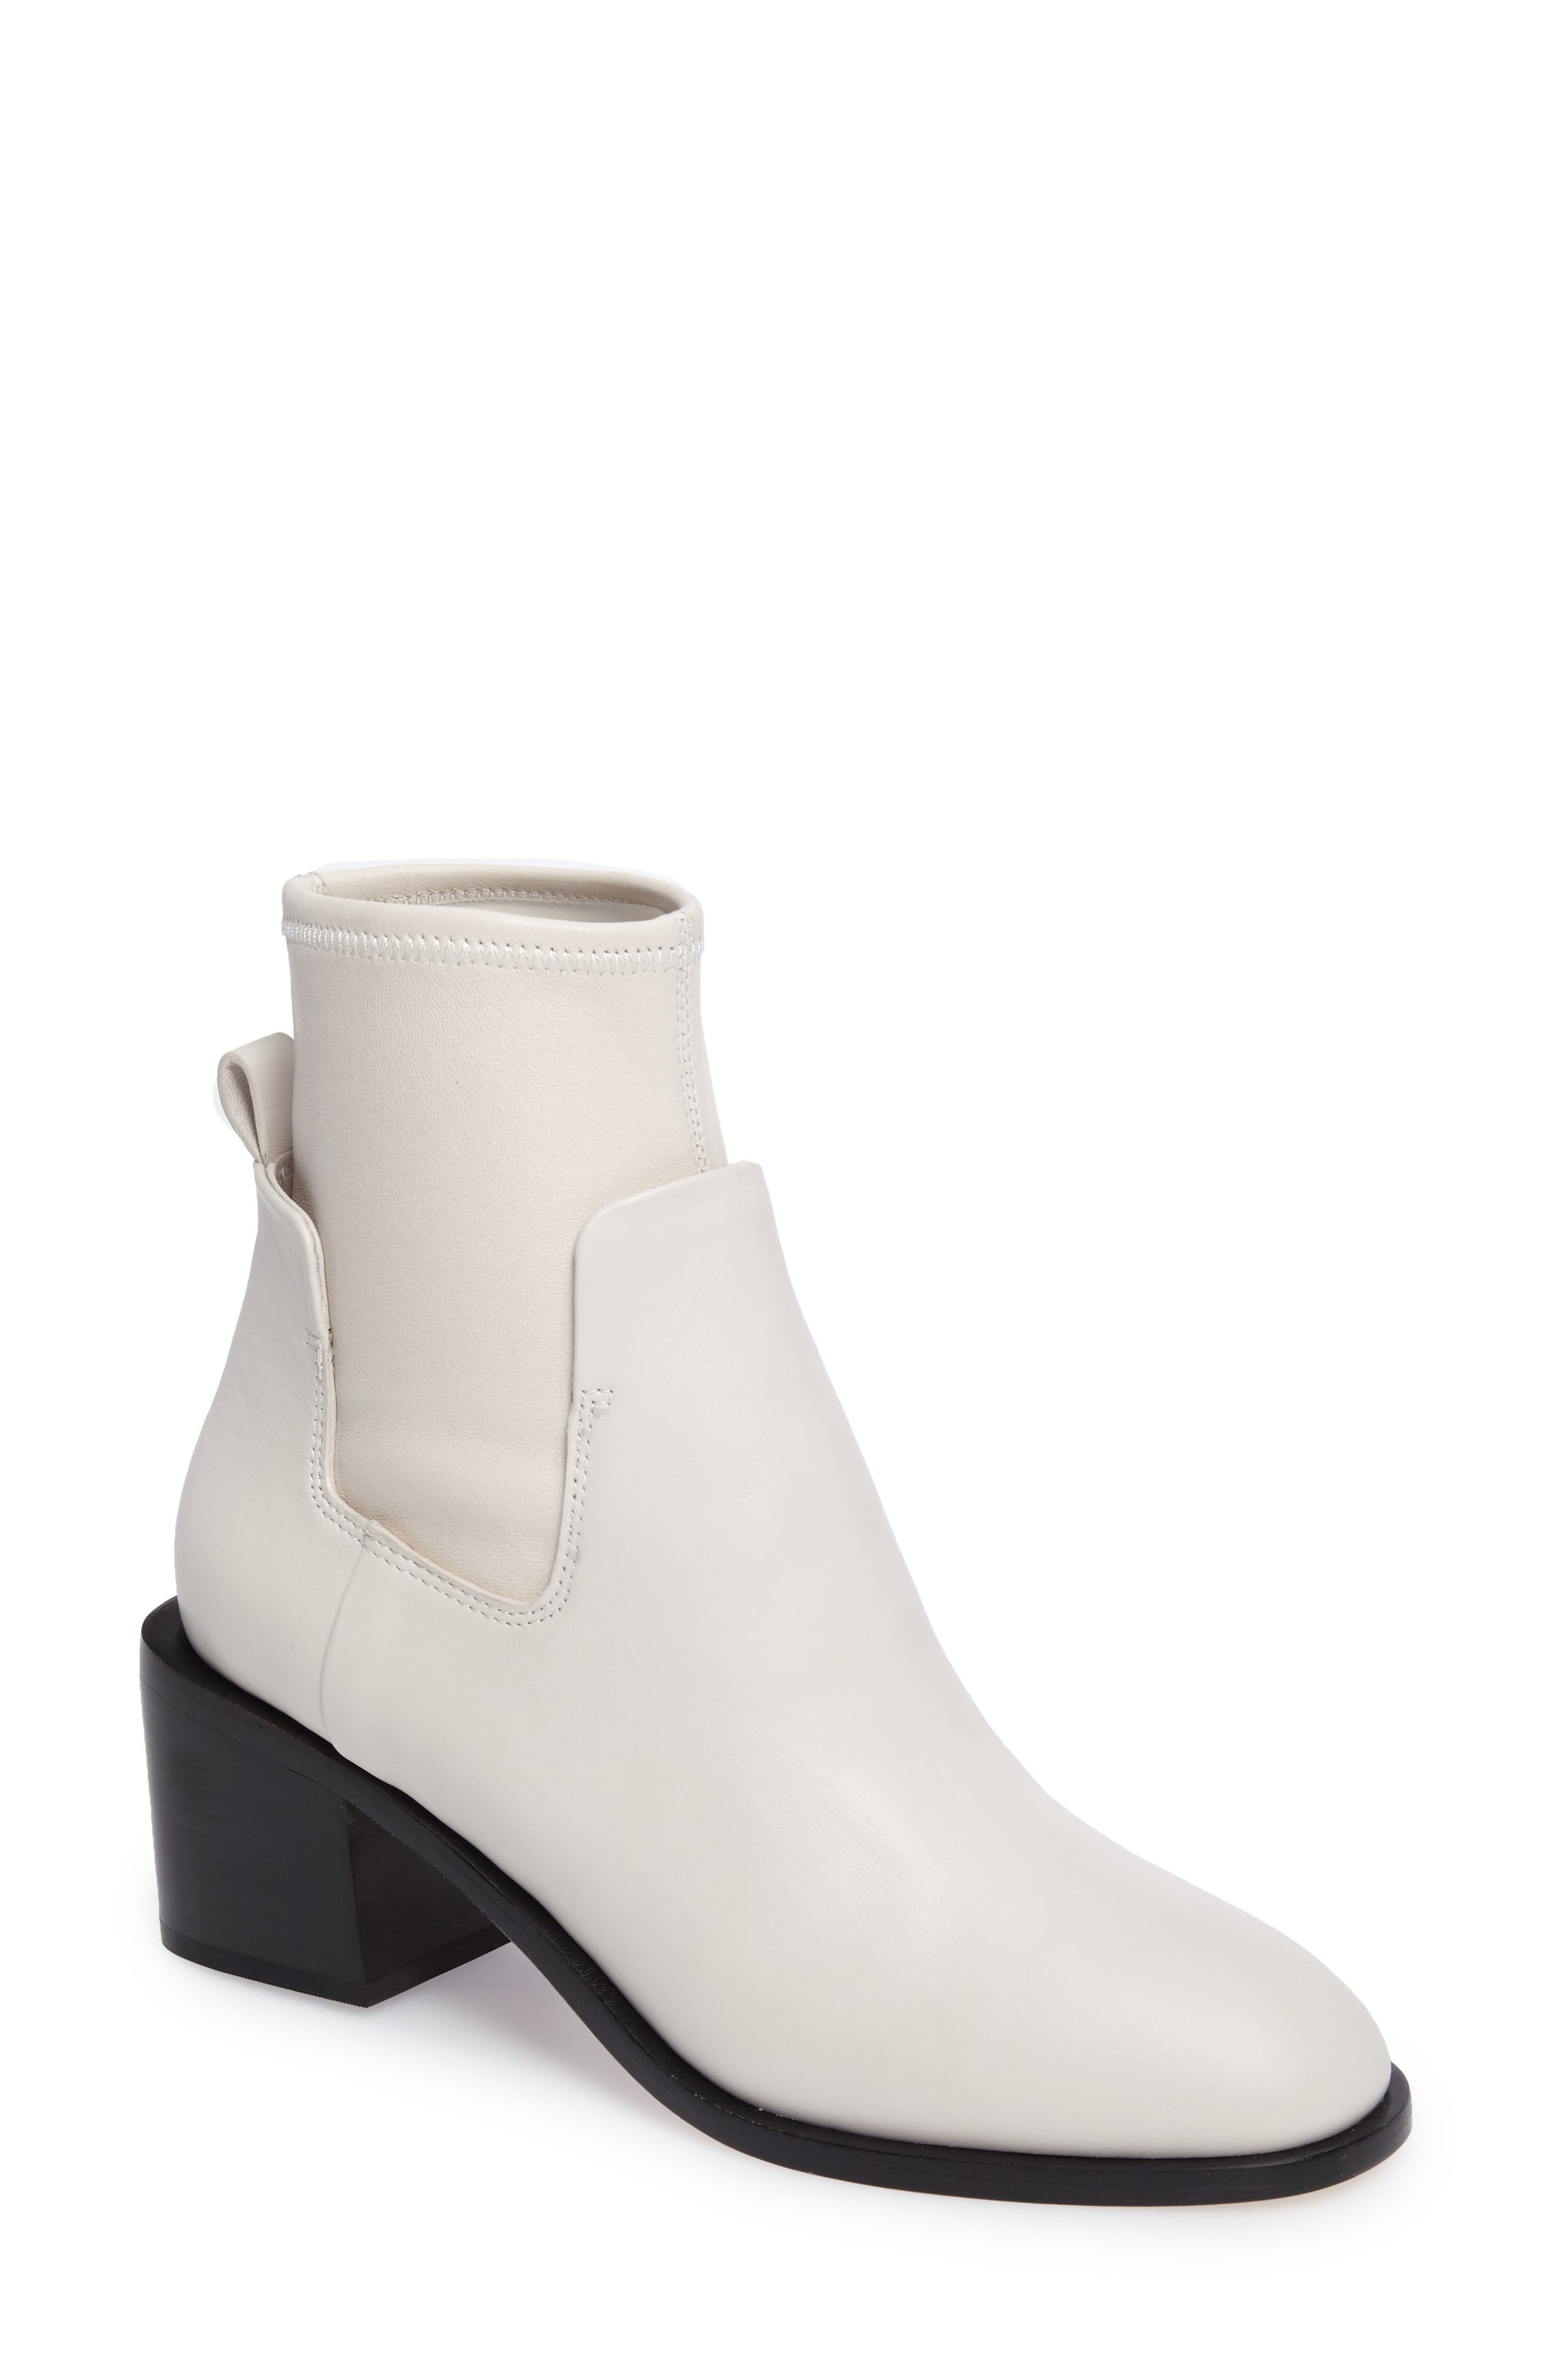 Alternate Image 1 Selected - Pour la Victoire Mari Sock Bootie (Women)